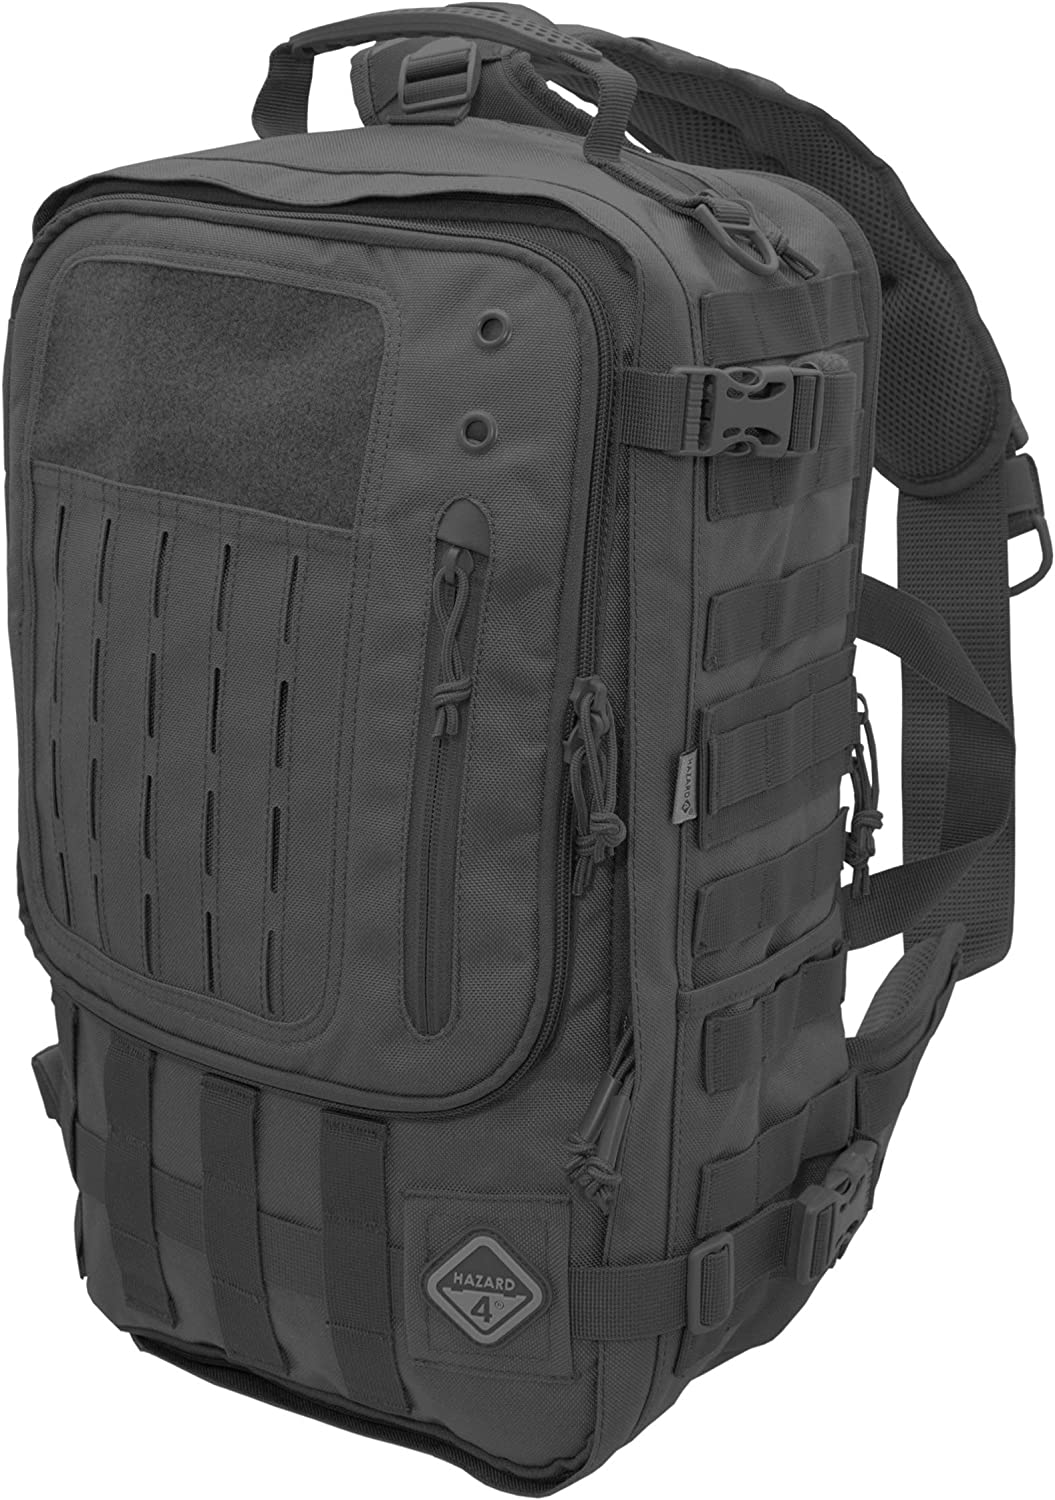 HAZARD 4 Sidewinder(TM) Full-Sized Laptop Sling Pack